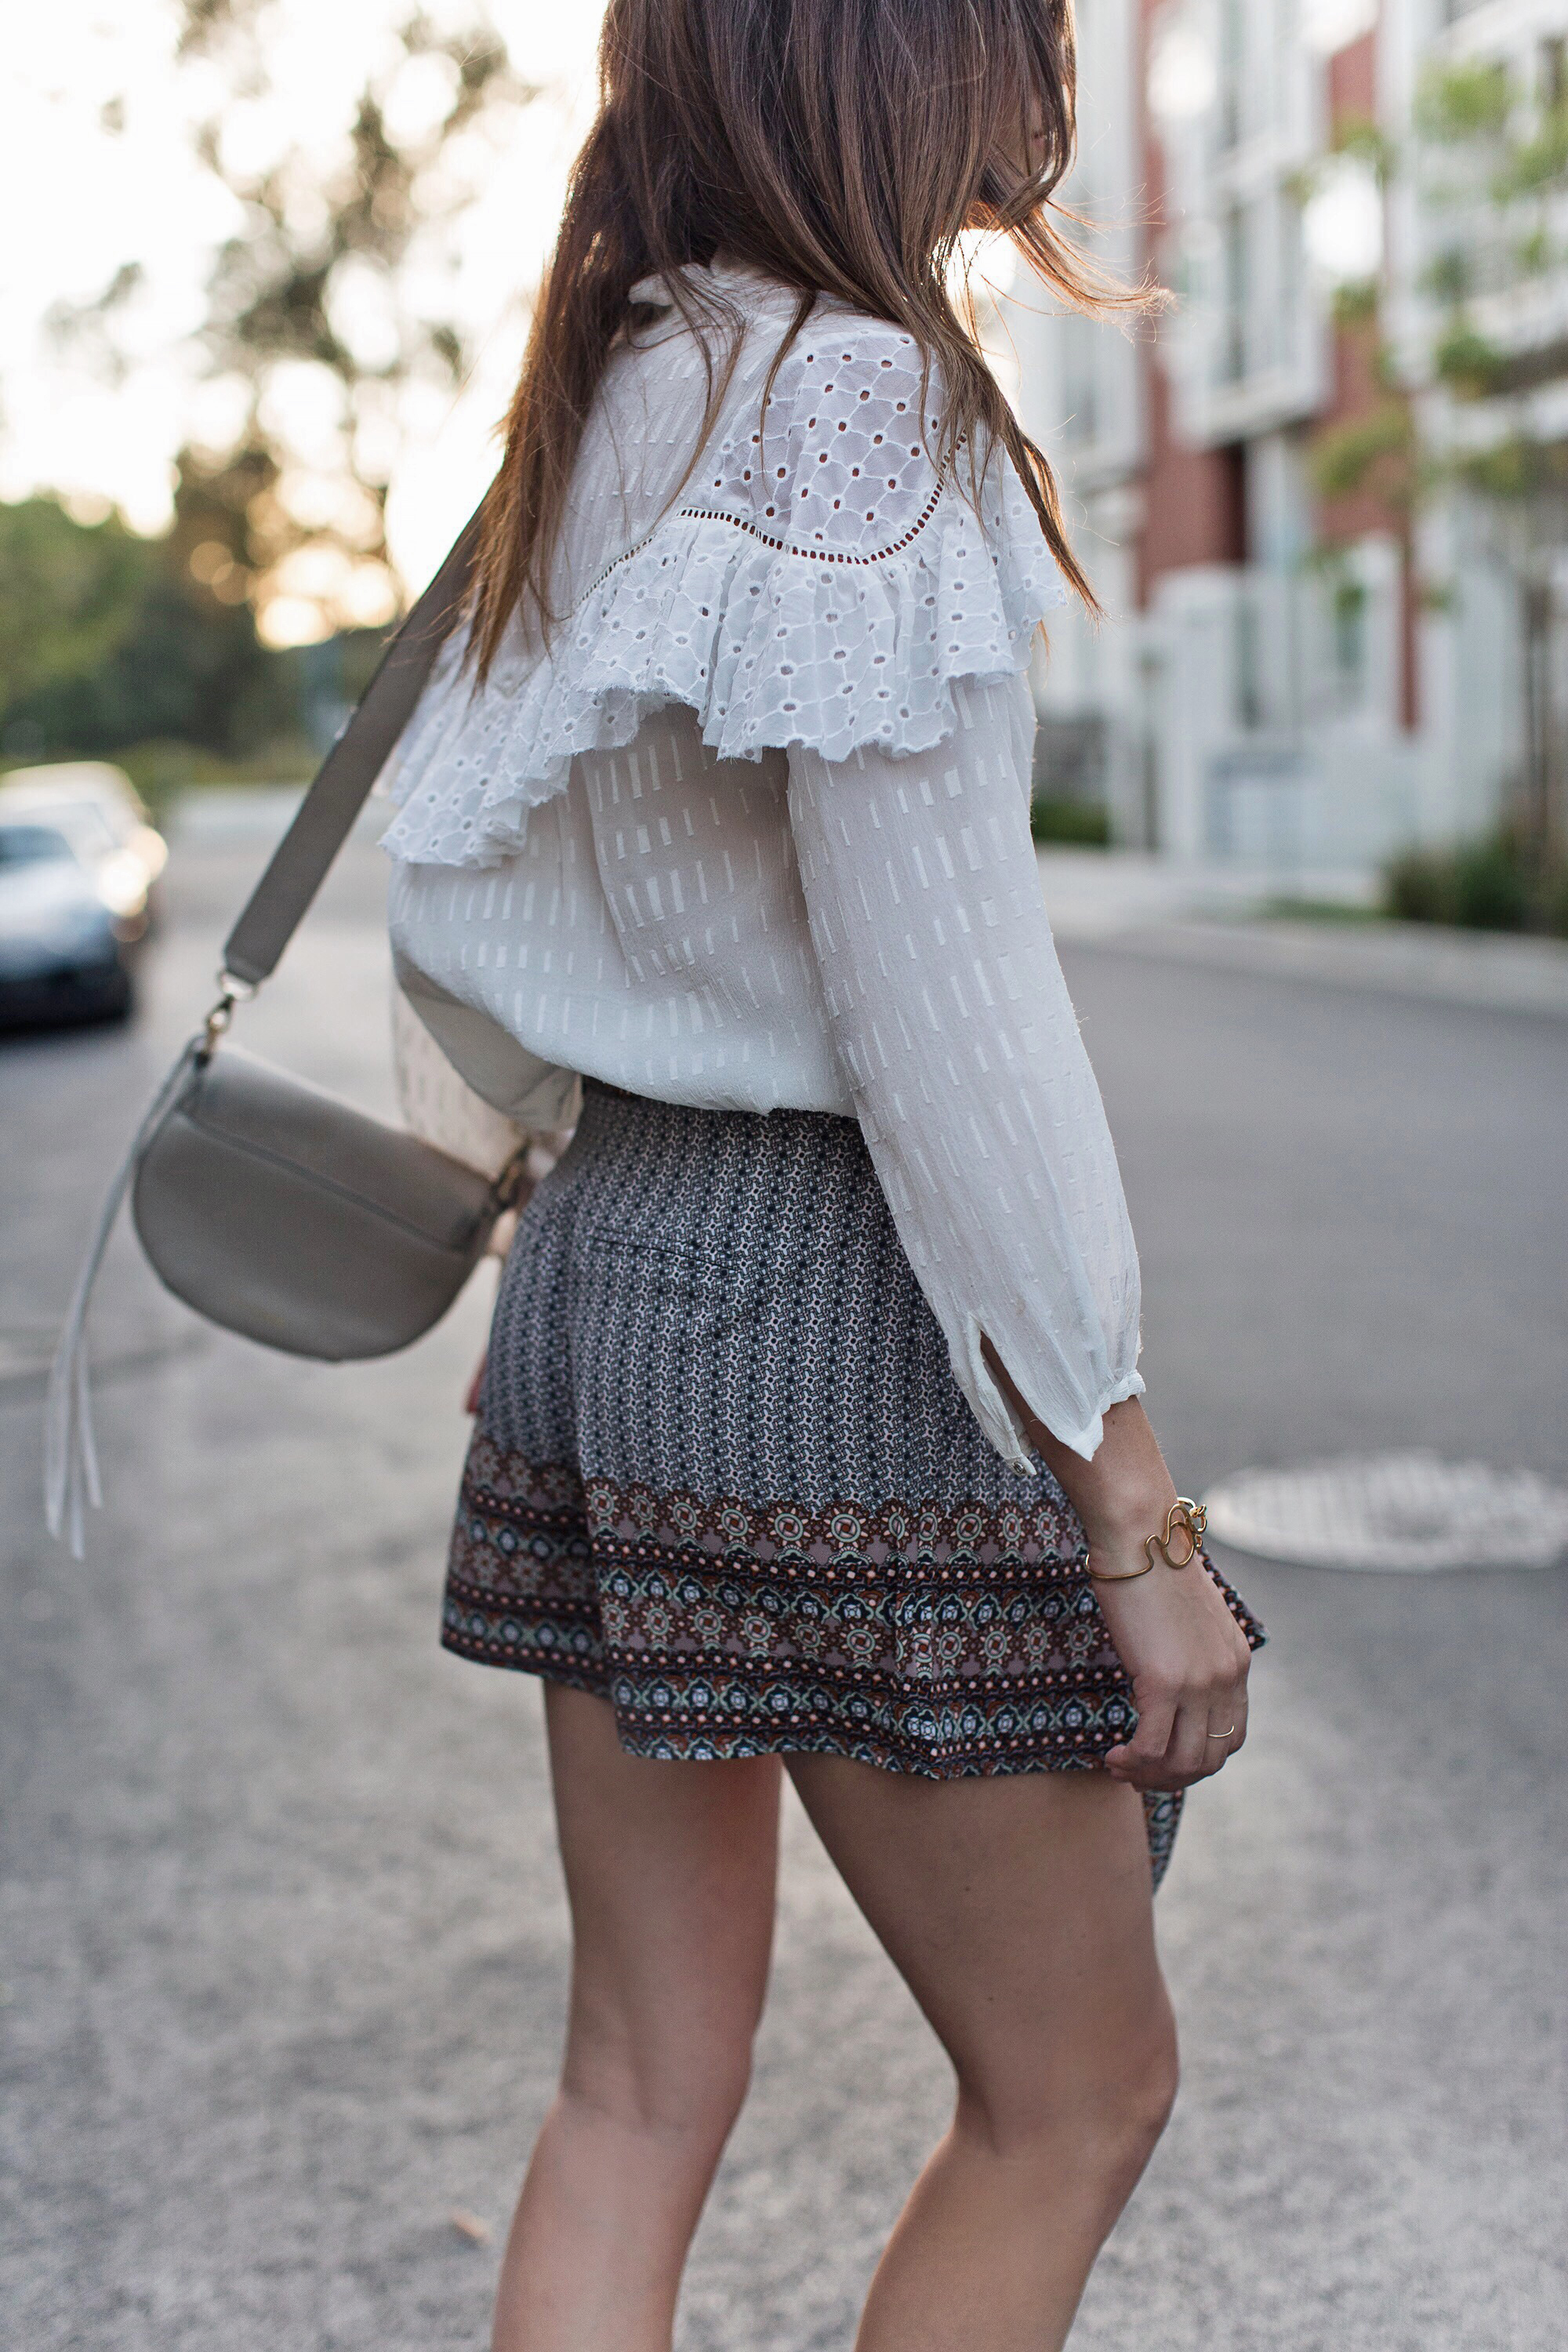 Flowing Summer Shorts